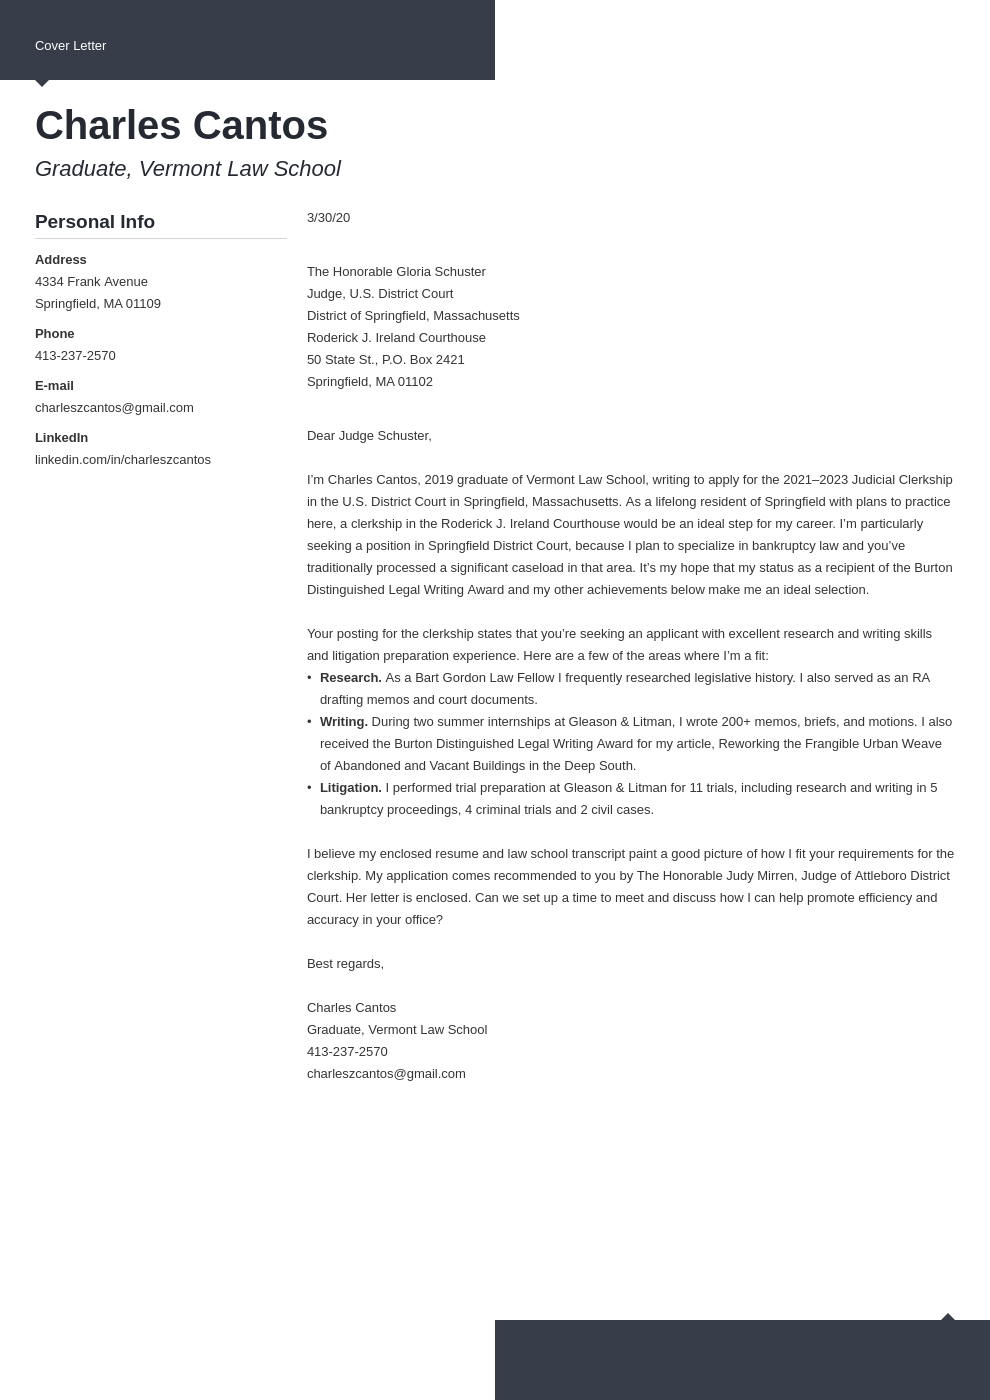 Judicial Clerkship Cover Letter Sample And Writing Guide